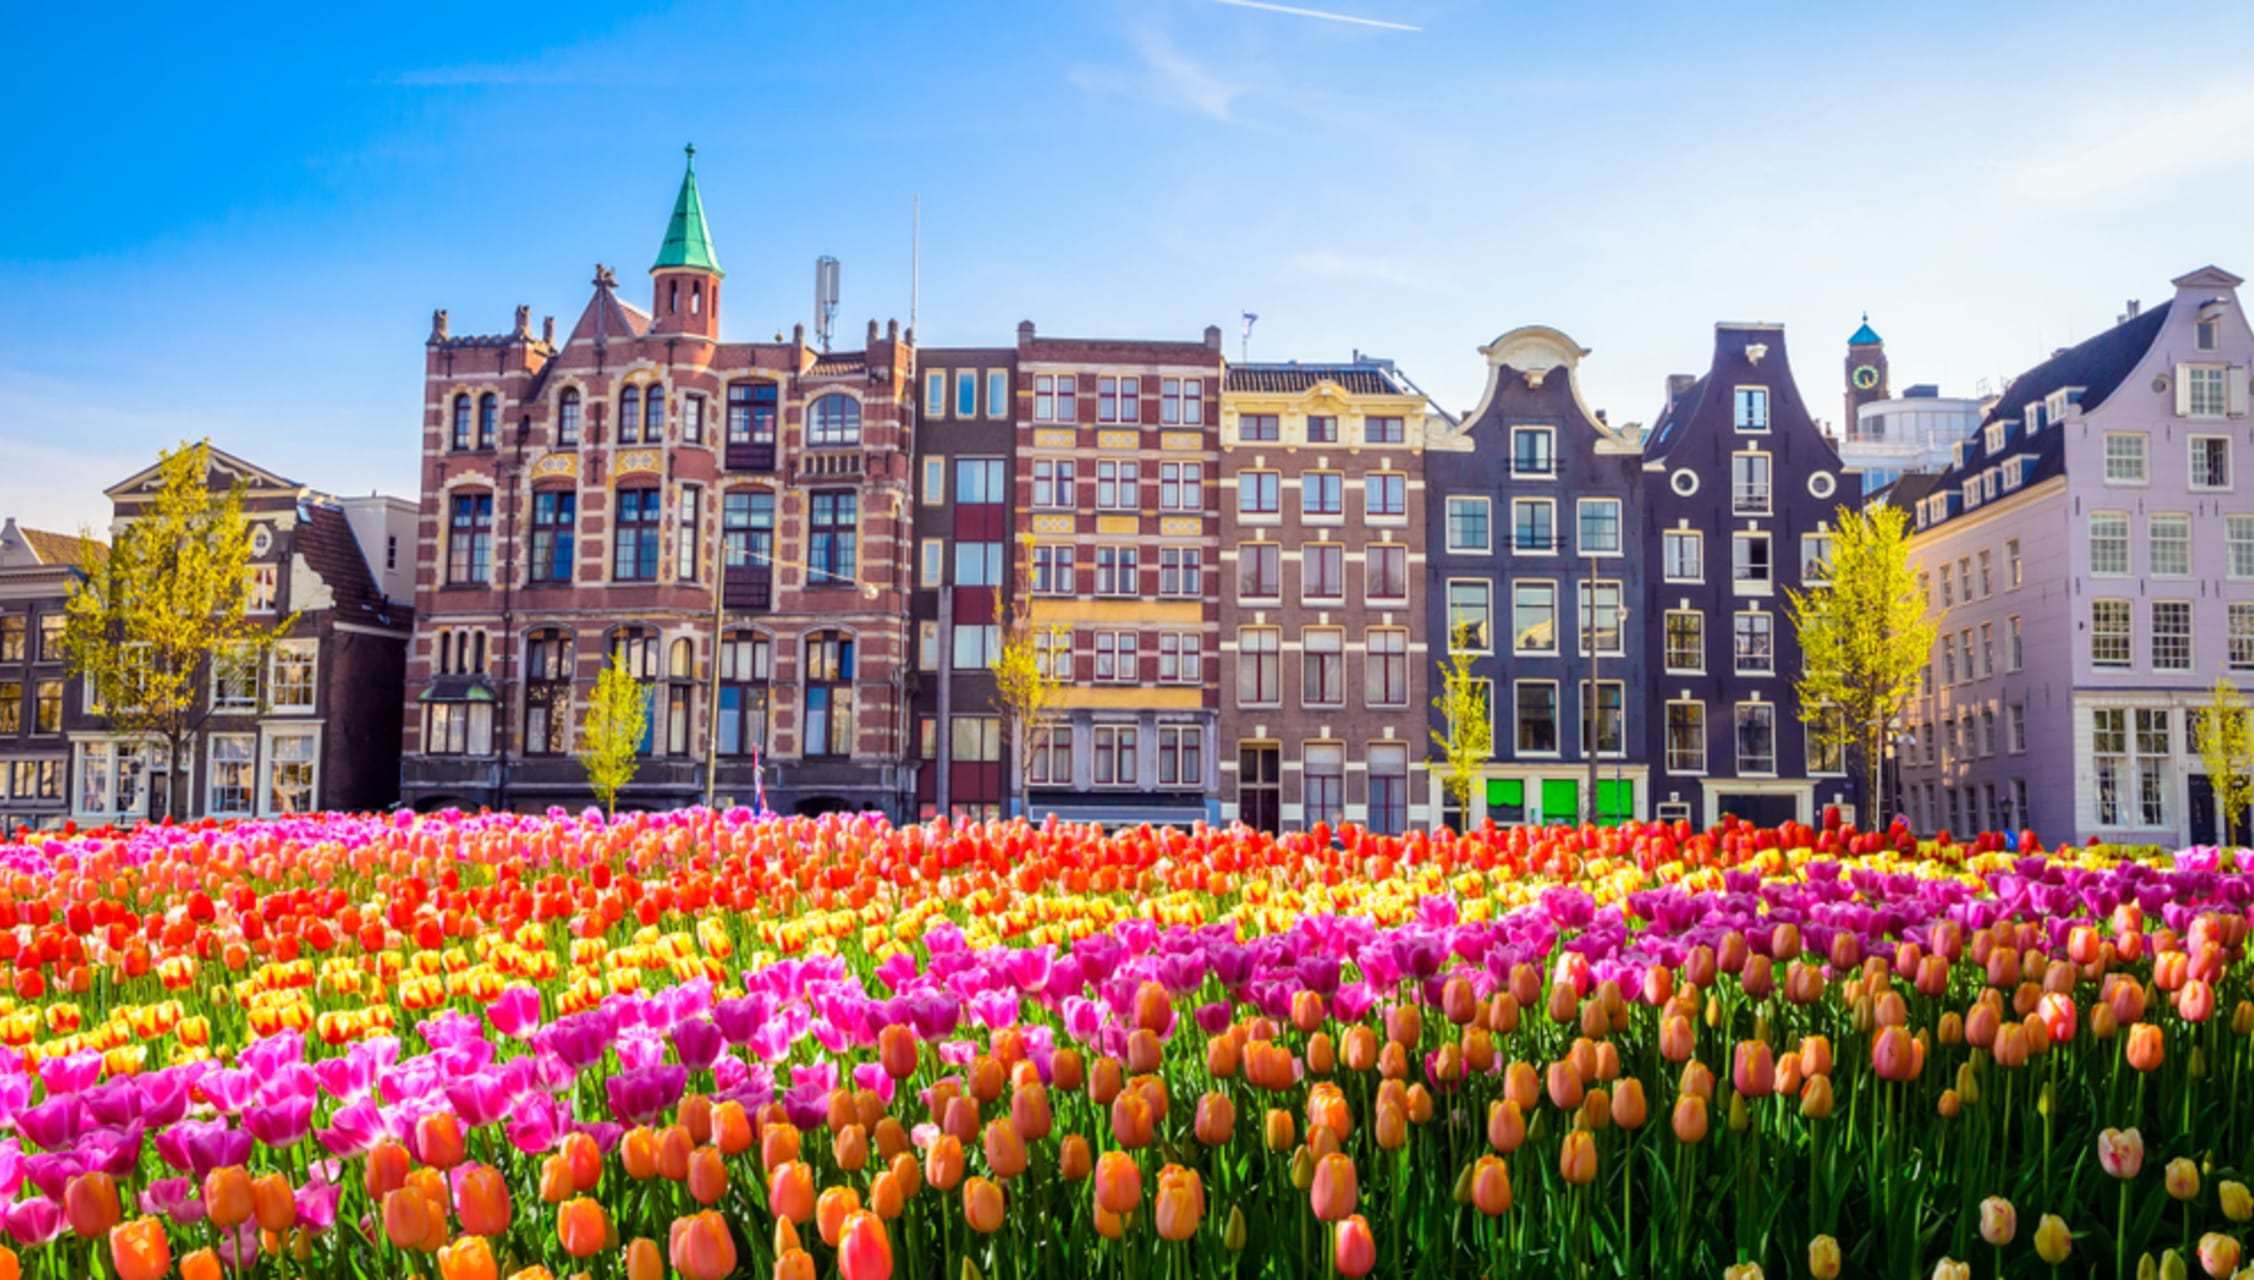 Amsterdam - Tulips from Amsterdam, Cycle in the spring.